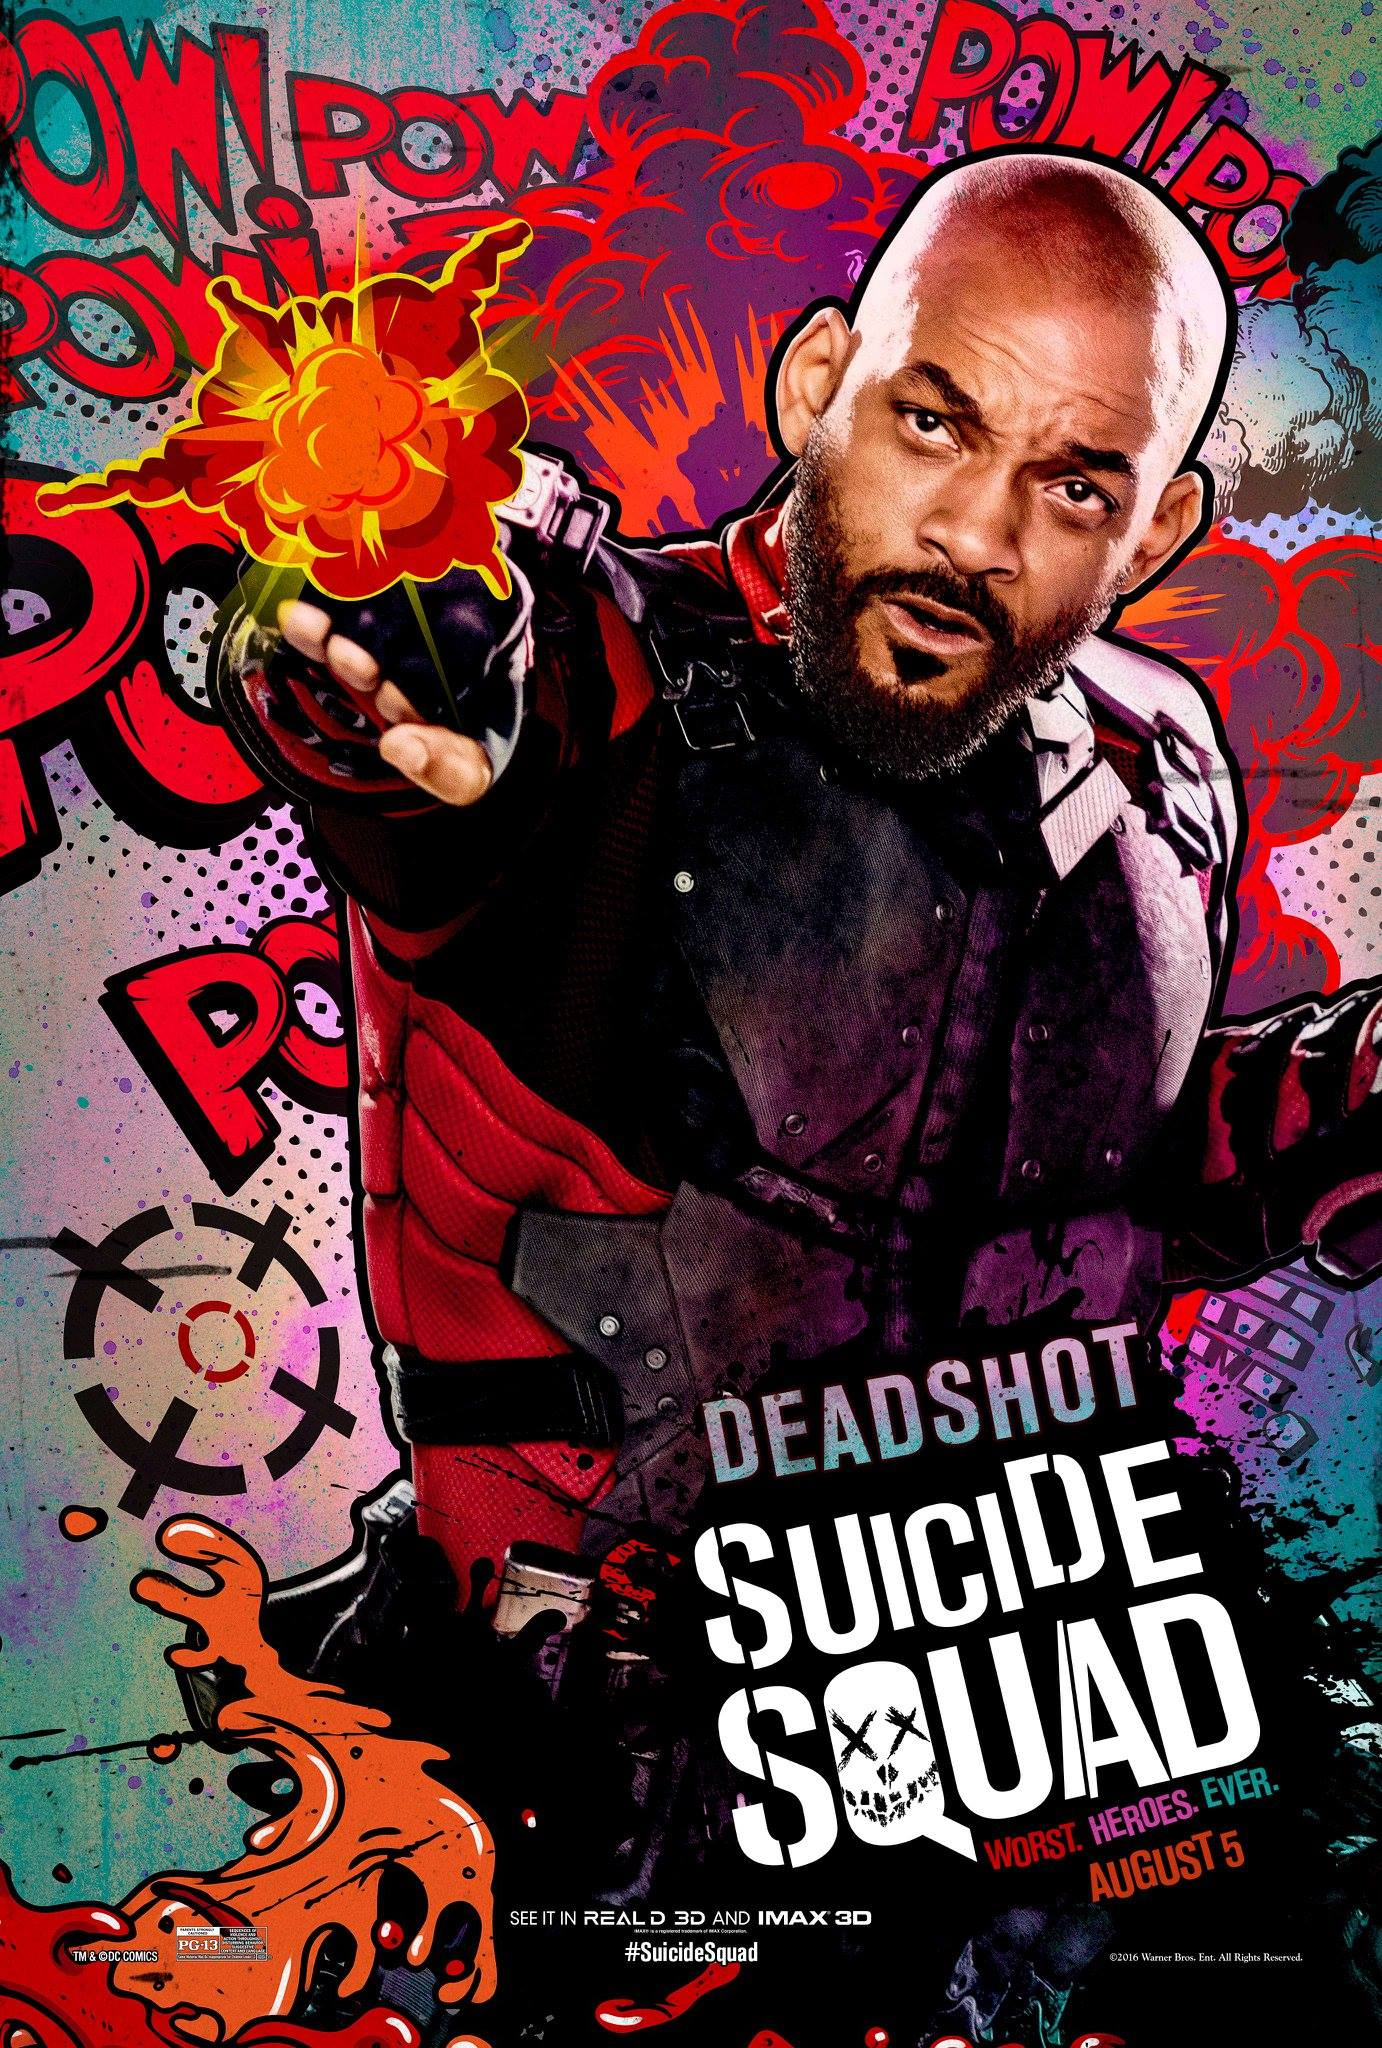 Deadshot played by Will Smith